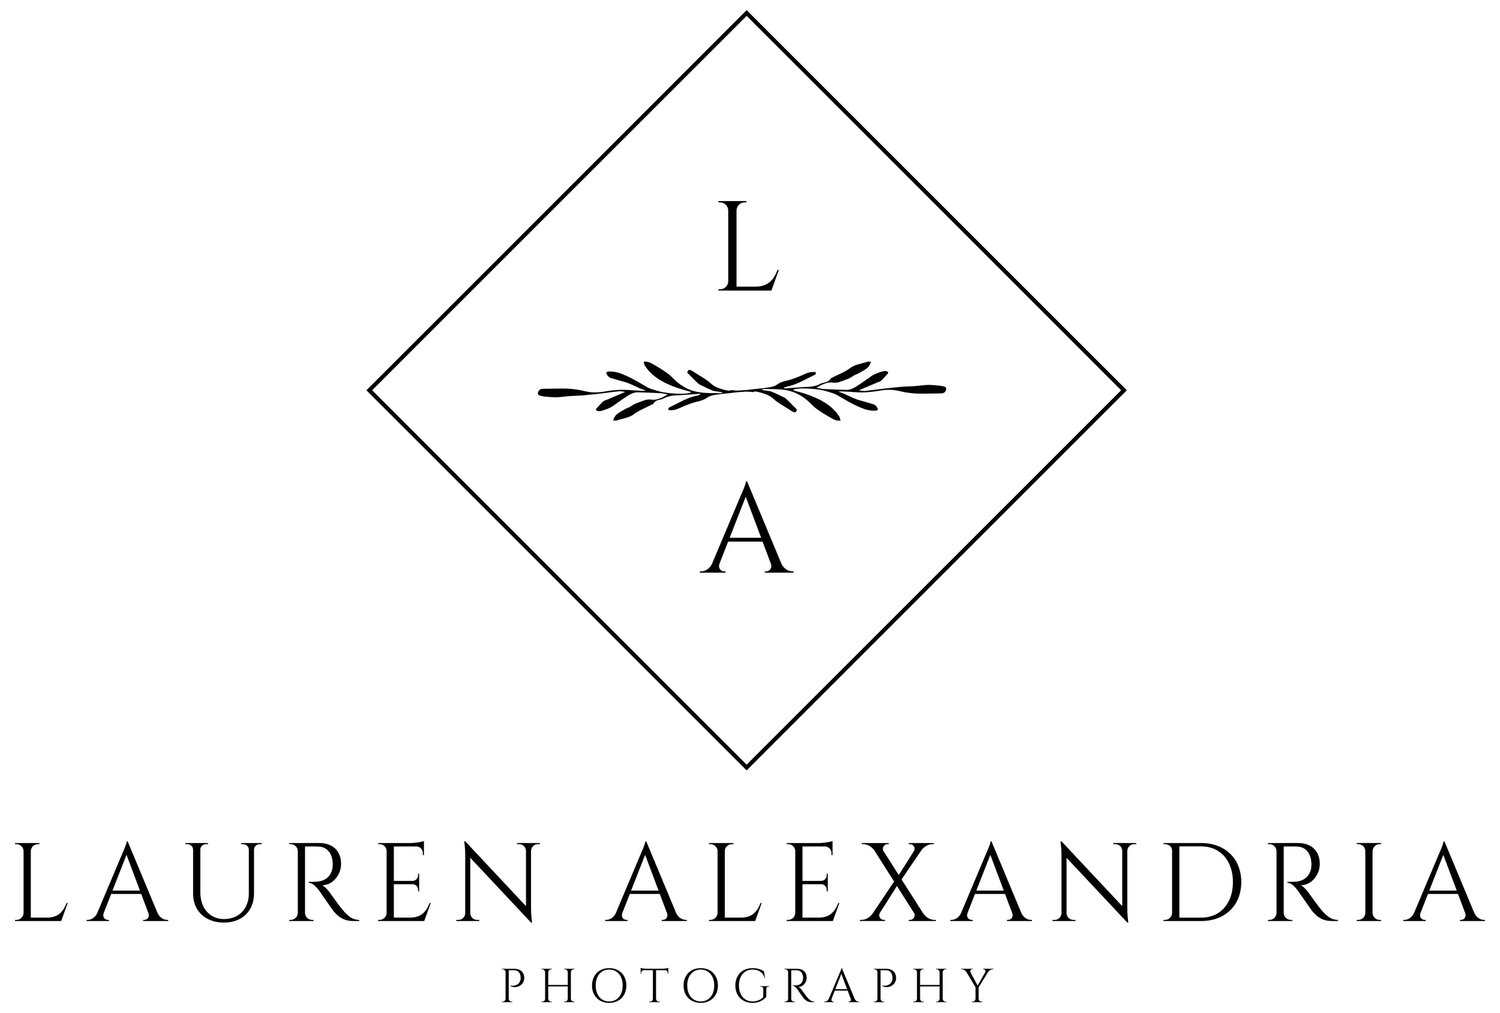 Lauren Alexandria Photography